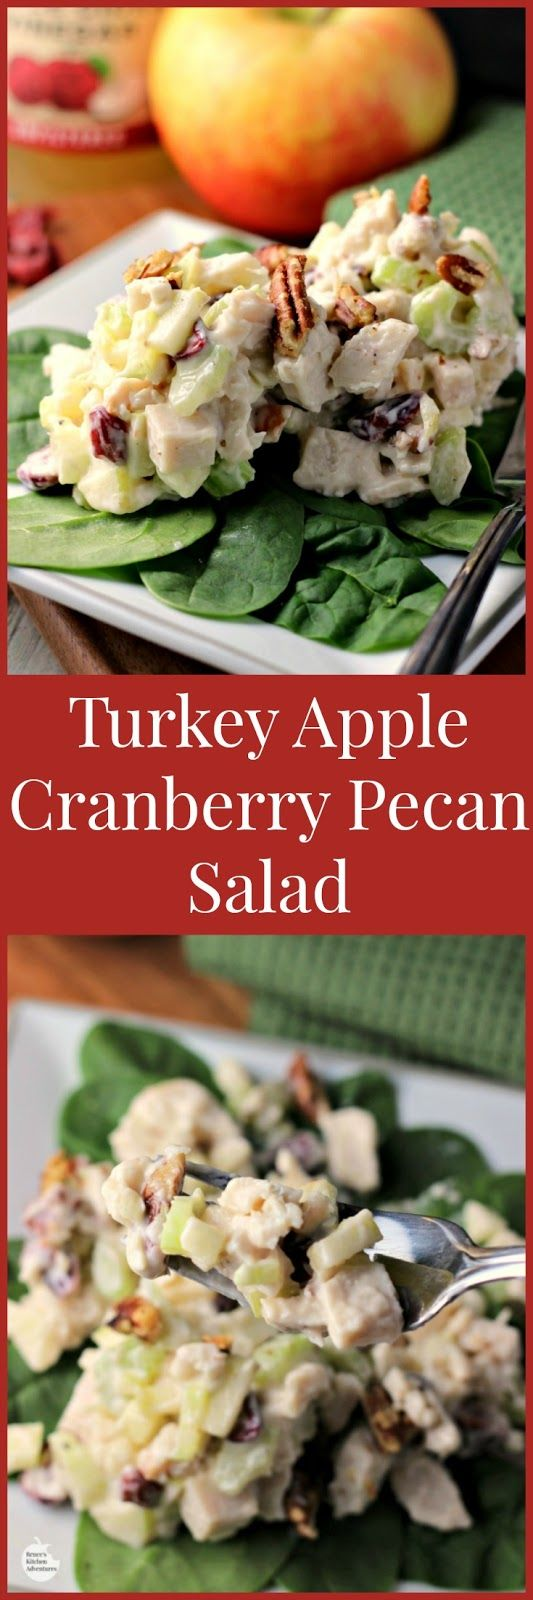 Turkey Apple Cranberry Pecan Salad By Renee S Kitchen Adventures An Easy Healthy Recipe For